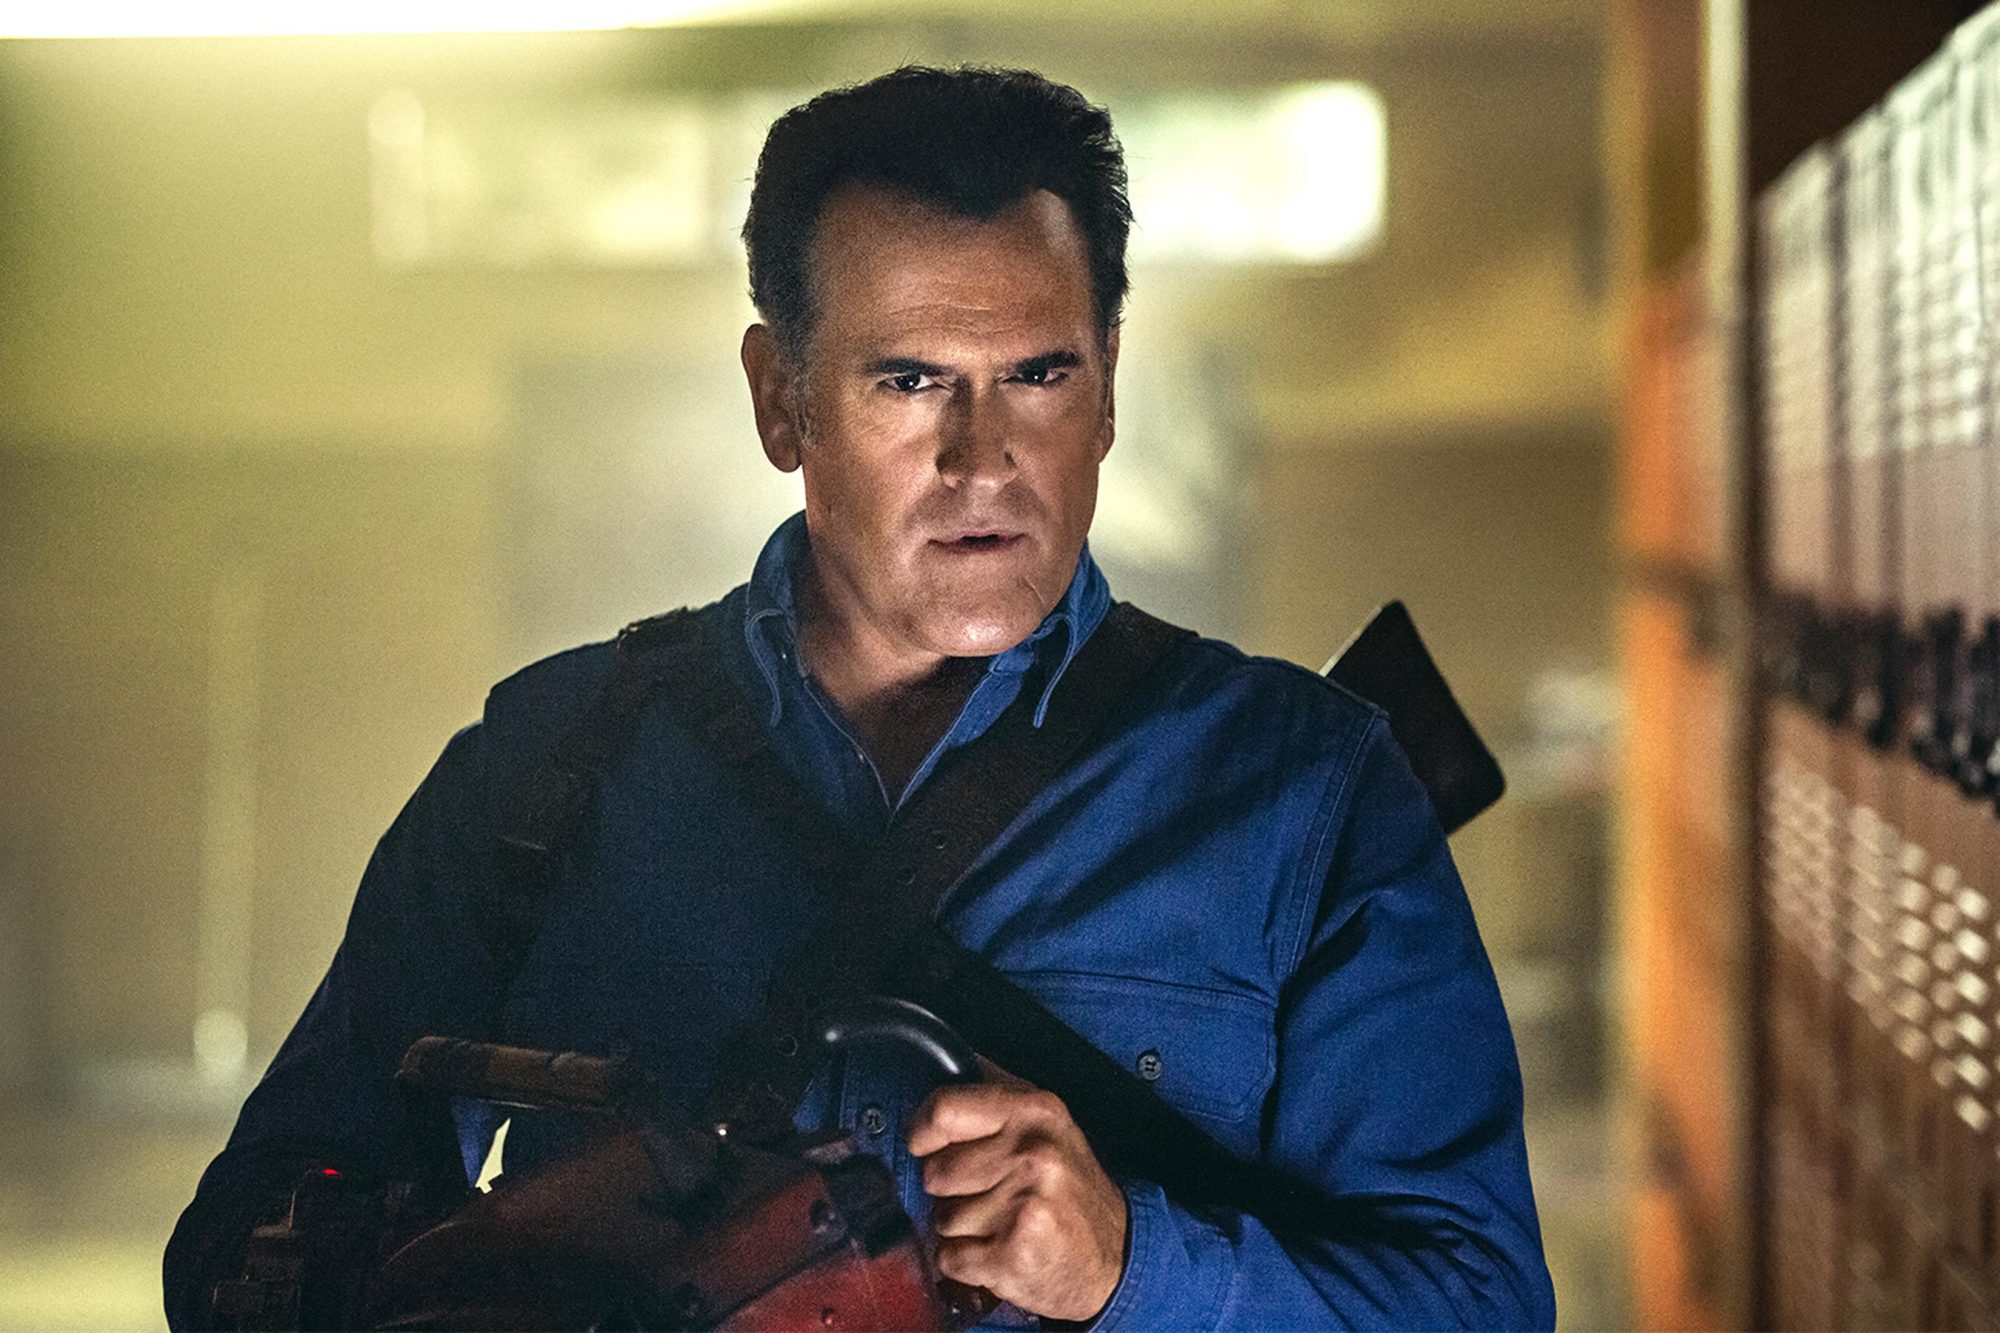 Ash vs. Evil Dead star Bruce Campbell actor iconic role